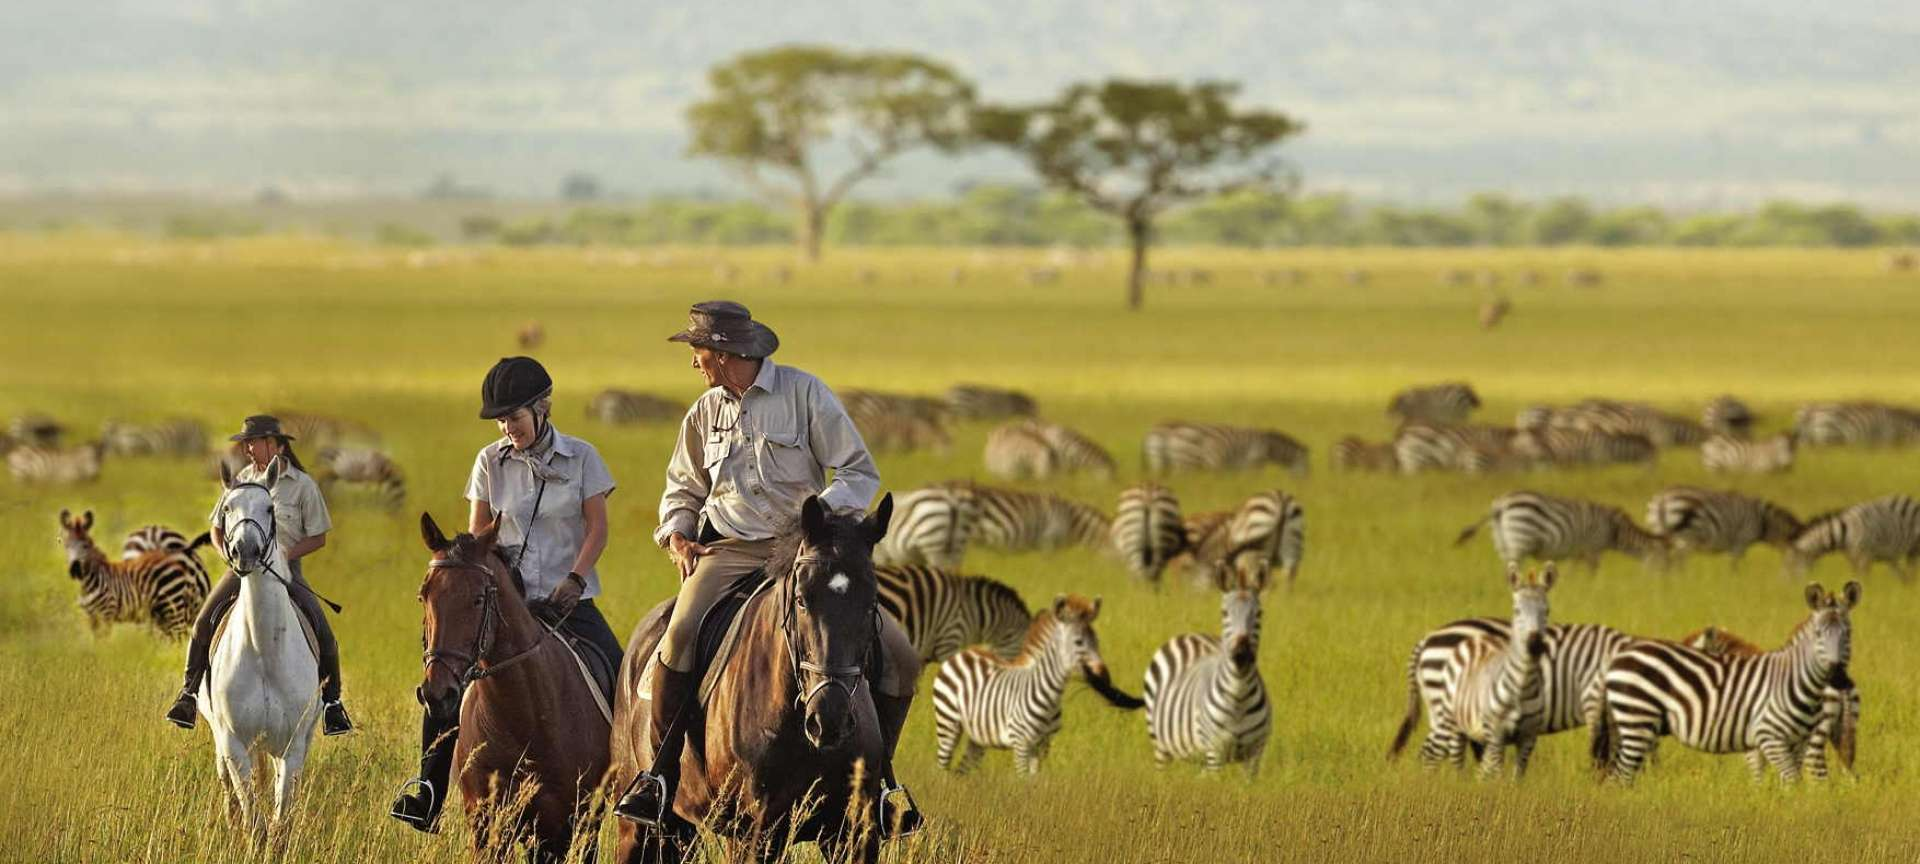 A horseback safari with your partner can make for a truly romantic time